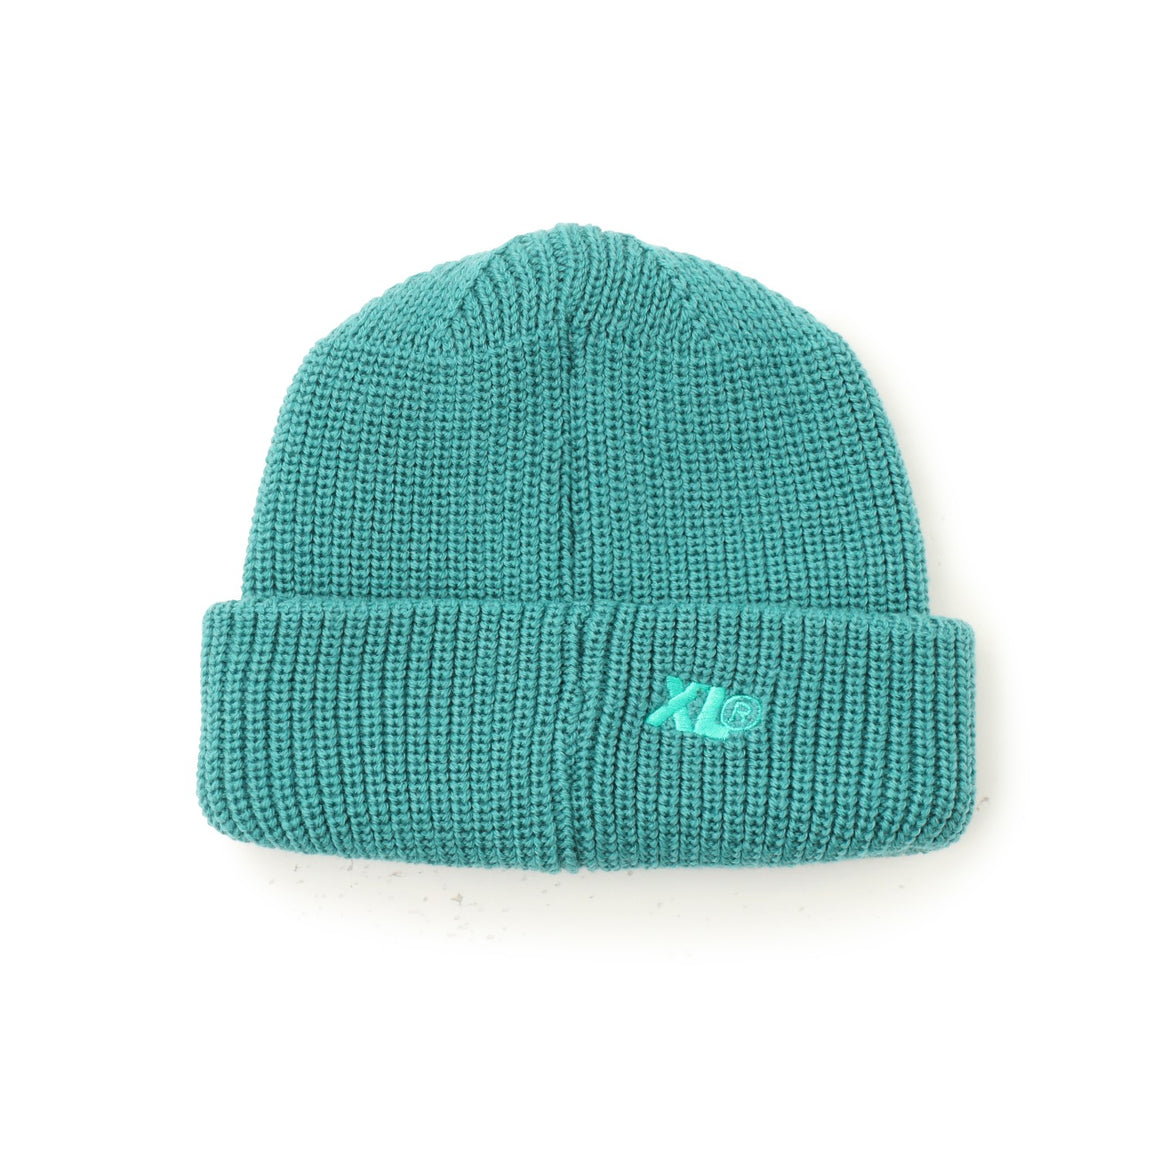 EMBROIDERY SHORT LENGTH CUFF BEANIE